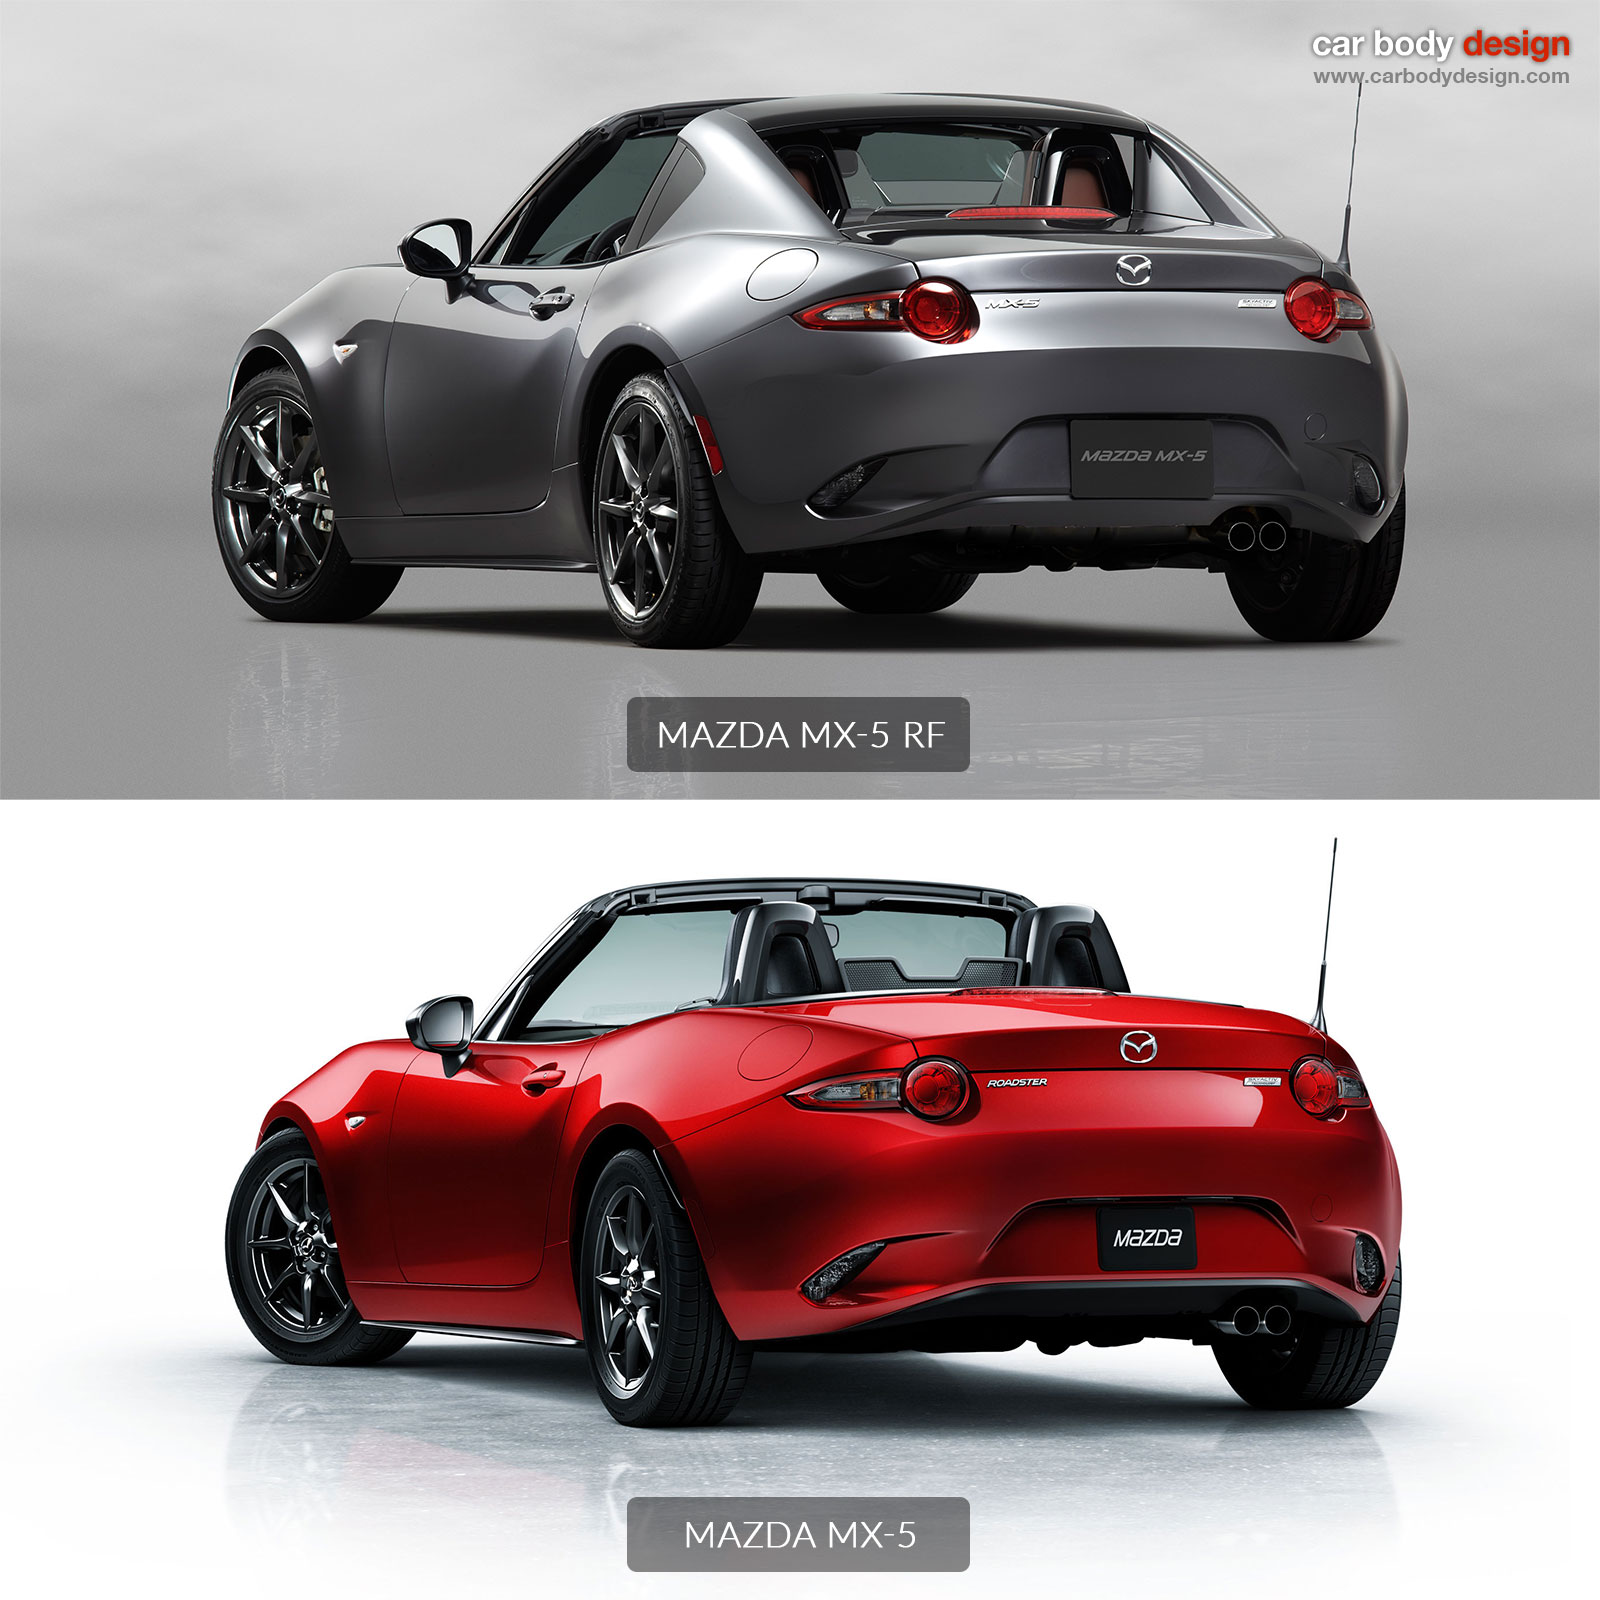 mazda mx-5 rf vs mx-5 - design comparison